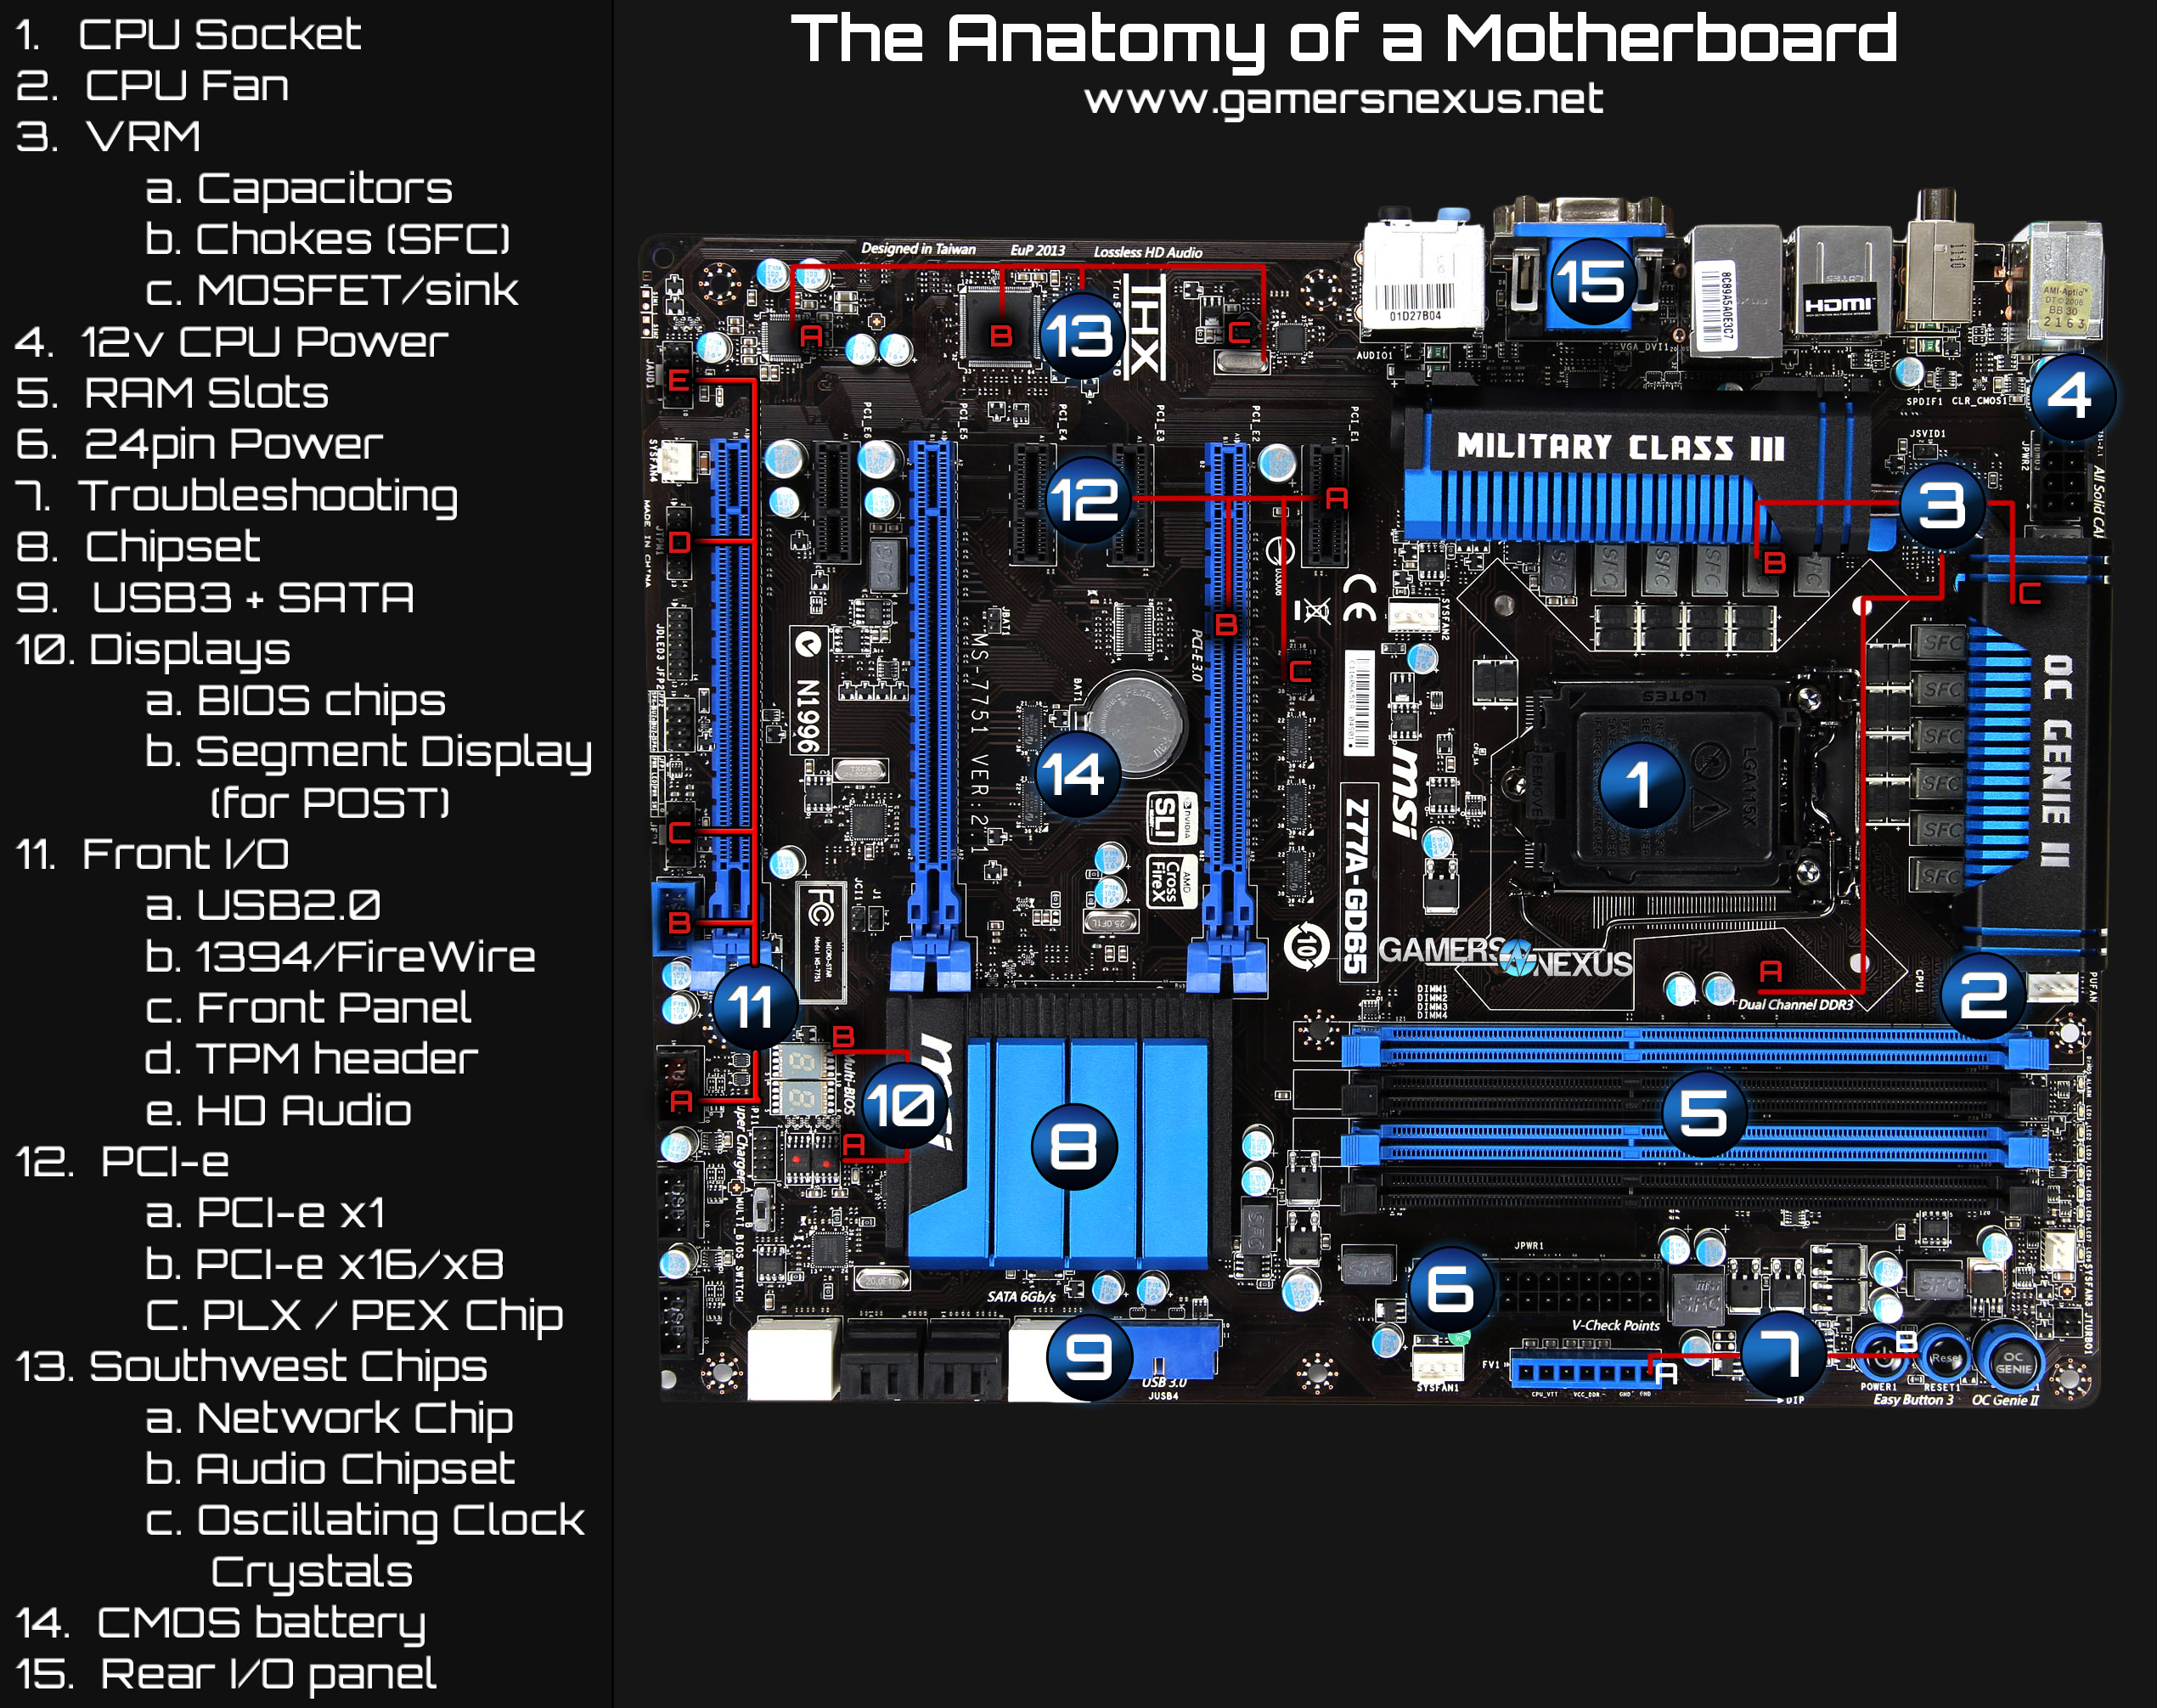 anatomy of a motherboard vrm chipset pci e explained rh gamersnexus net Computer Motherboard Diagram with Label Mini ATX Motherboard Diagram